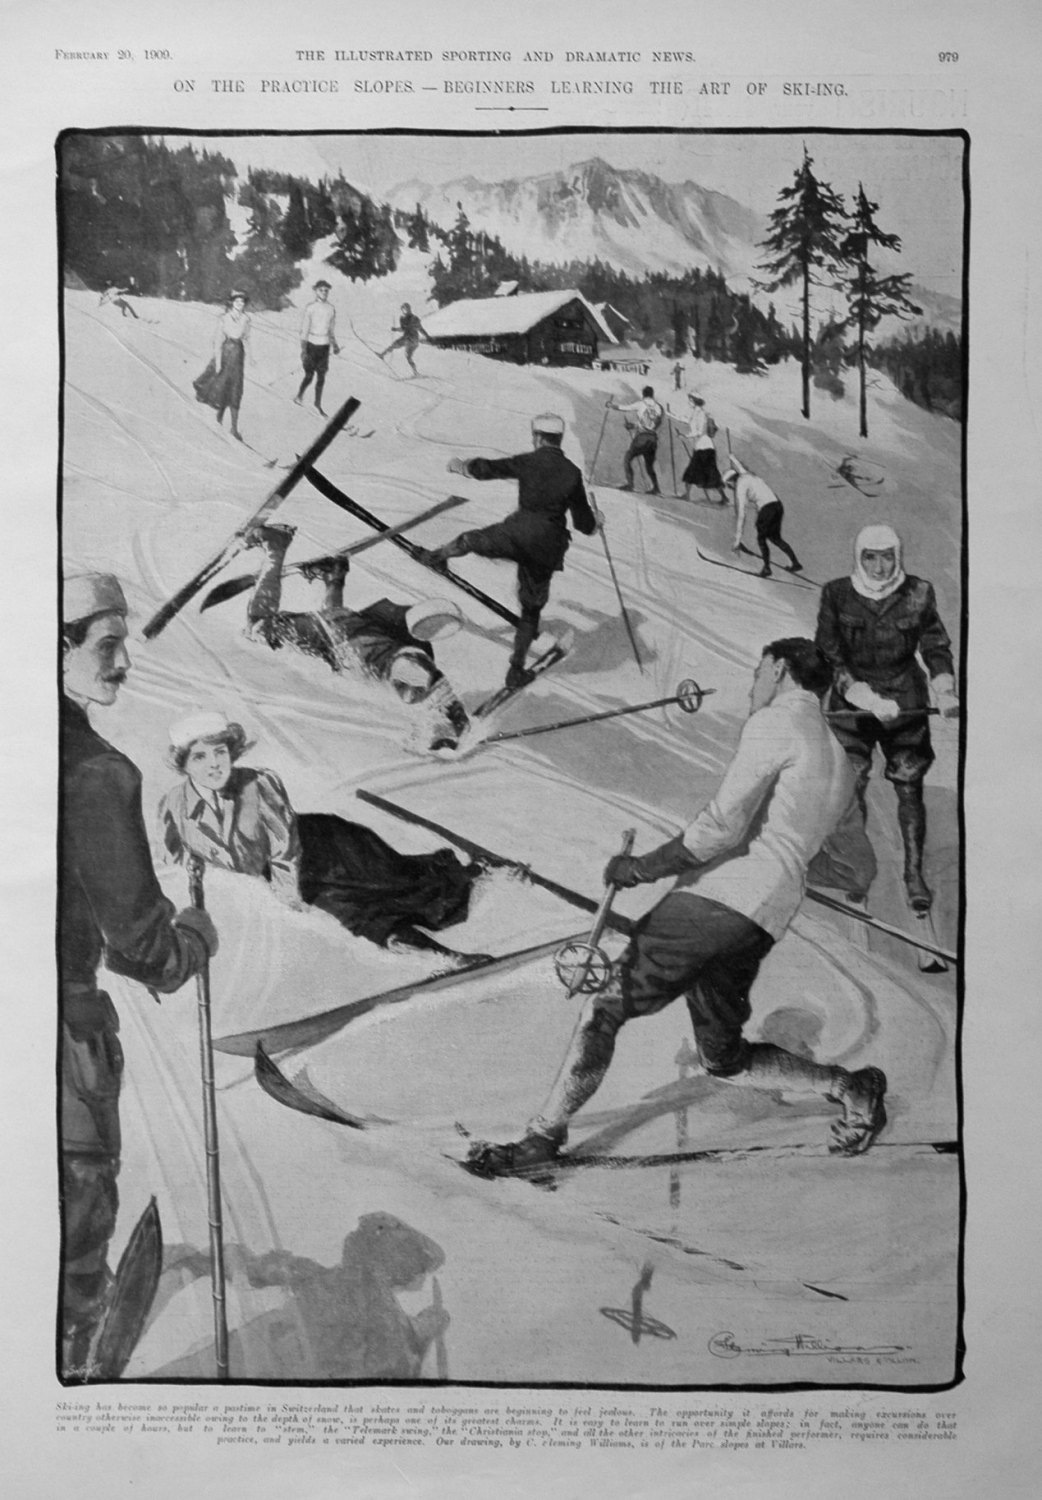 On the Practice Slopes . - Beginners Learning the Art of Ski-ing. 1909